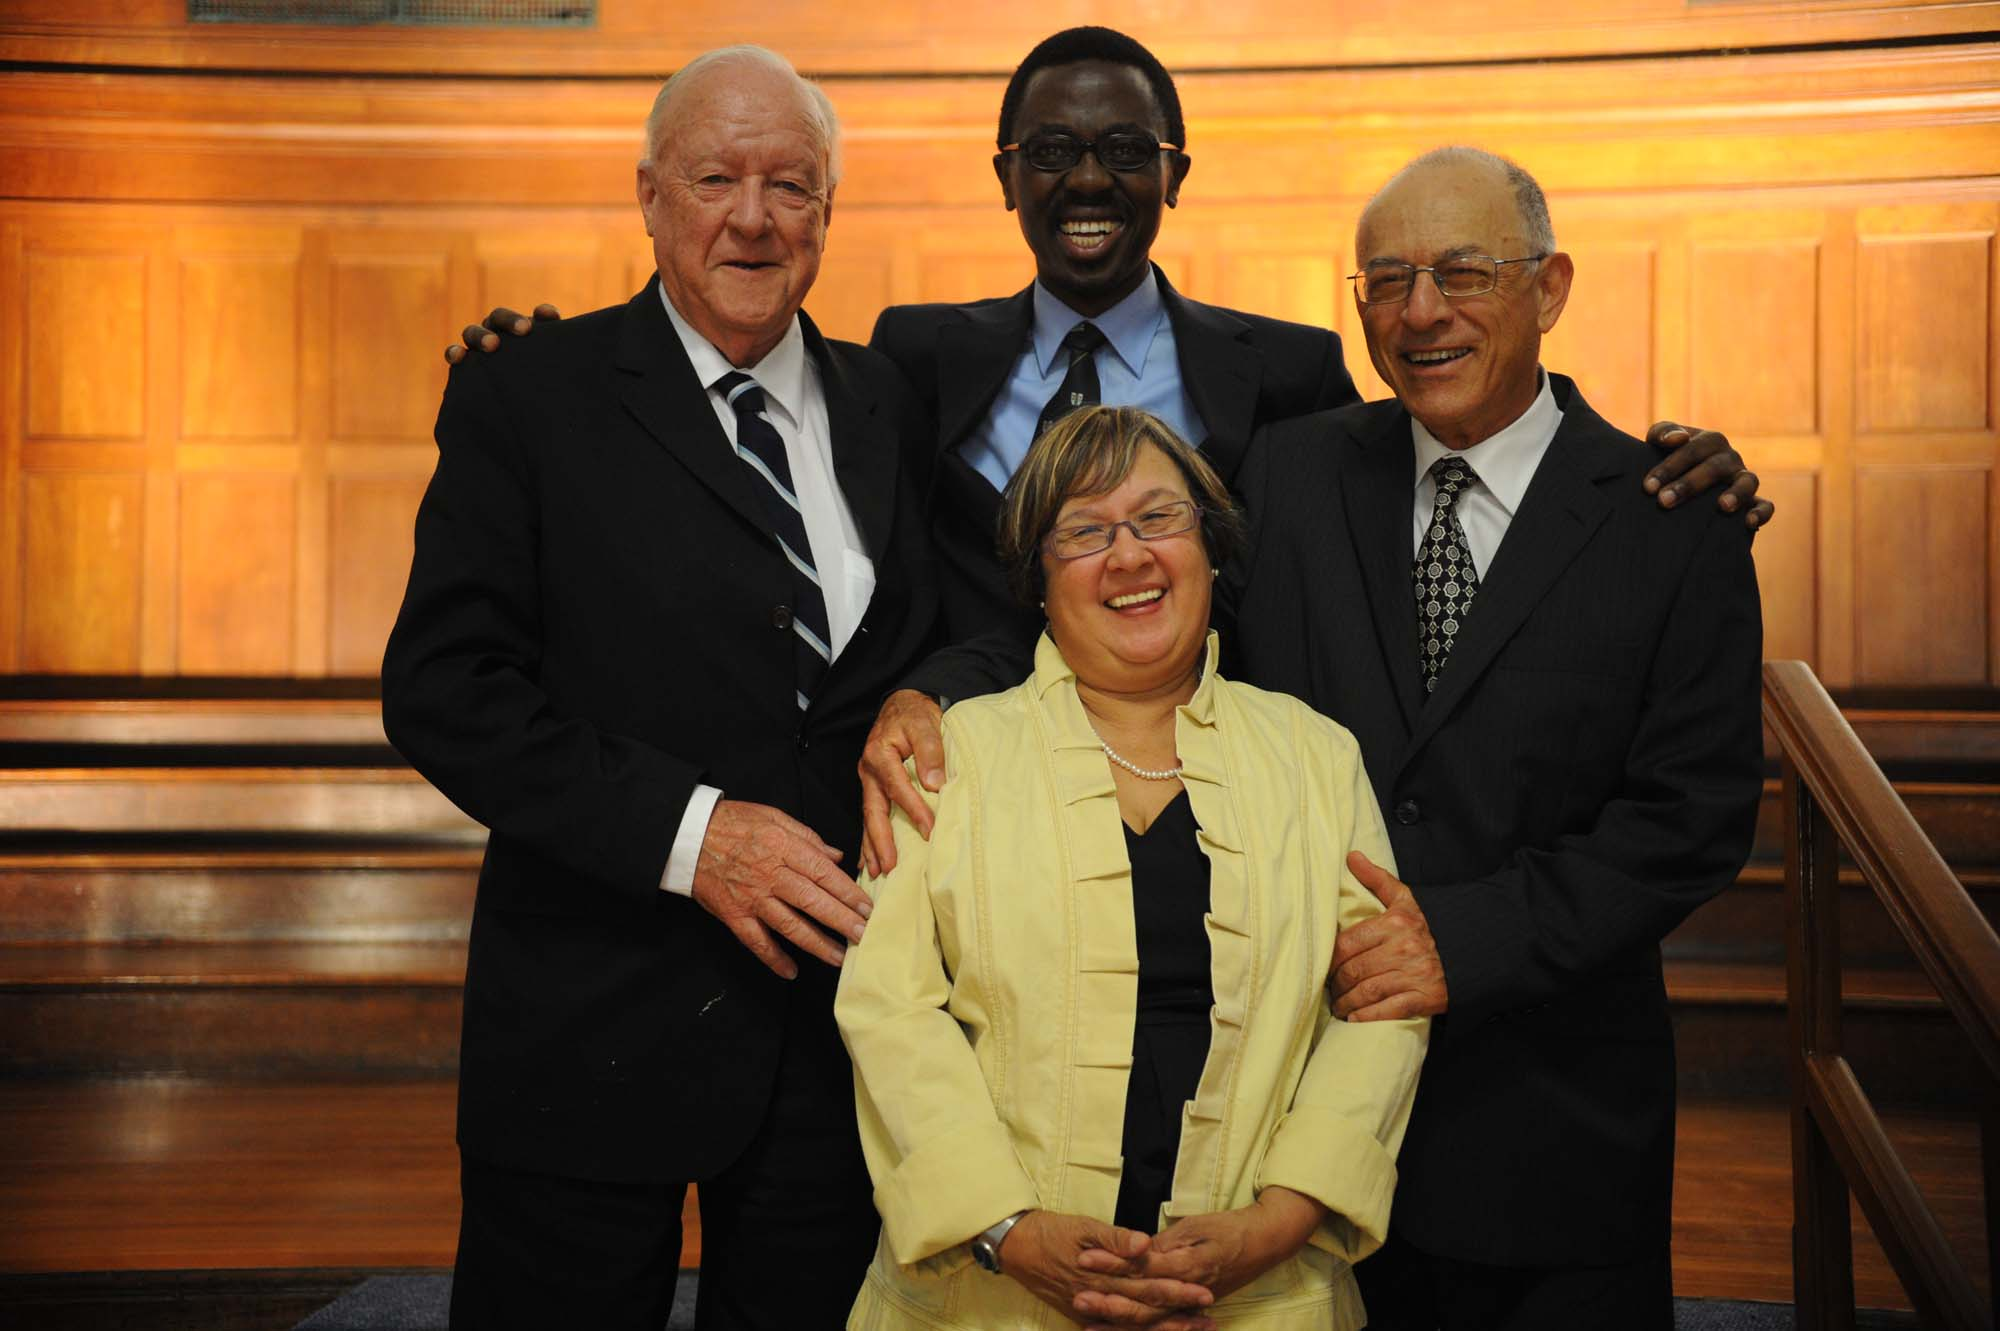 With the late Prof Bongani Mayosi (head of the Department of Medicine), Prof Solomon Benatar (former head of the Department of Medicine) and Prof Marian Jacobs (dean of the Faculty of Health Sciences) celebrating the 90th anniversary of UCT's Department of Medicine in February 2010.